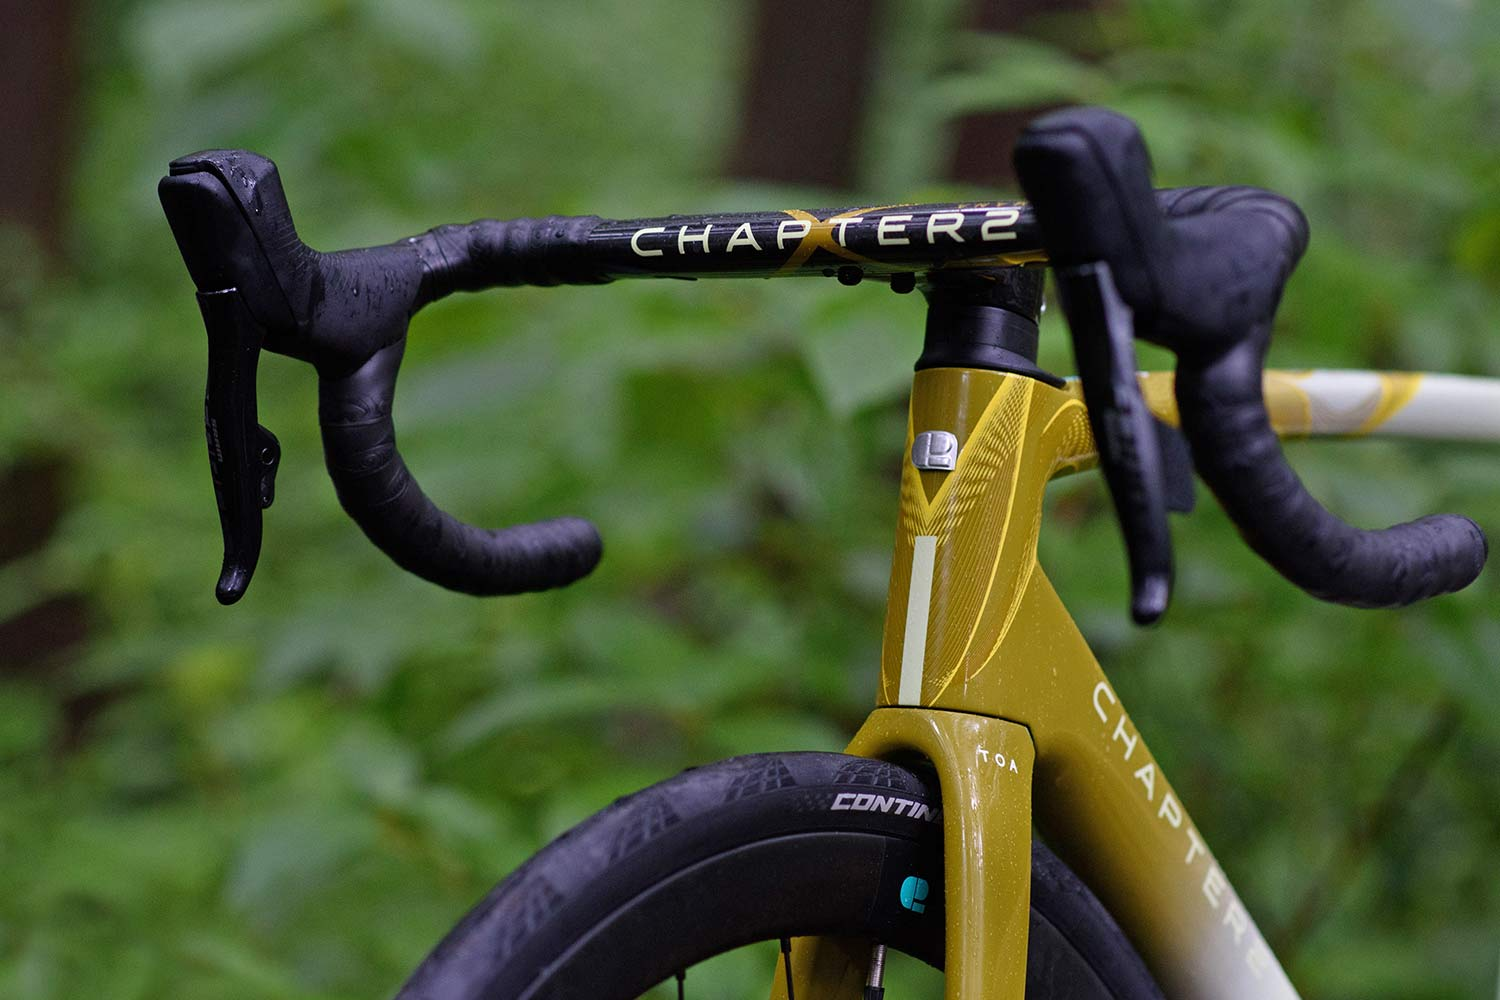 Chapter2 TOA all-road bike, fully integrated versatile aero carbon road bike, tire clearance